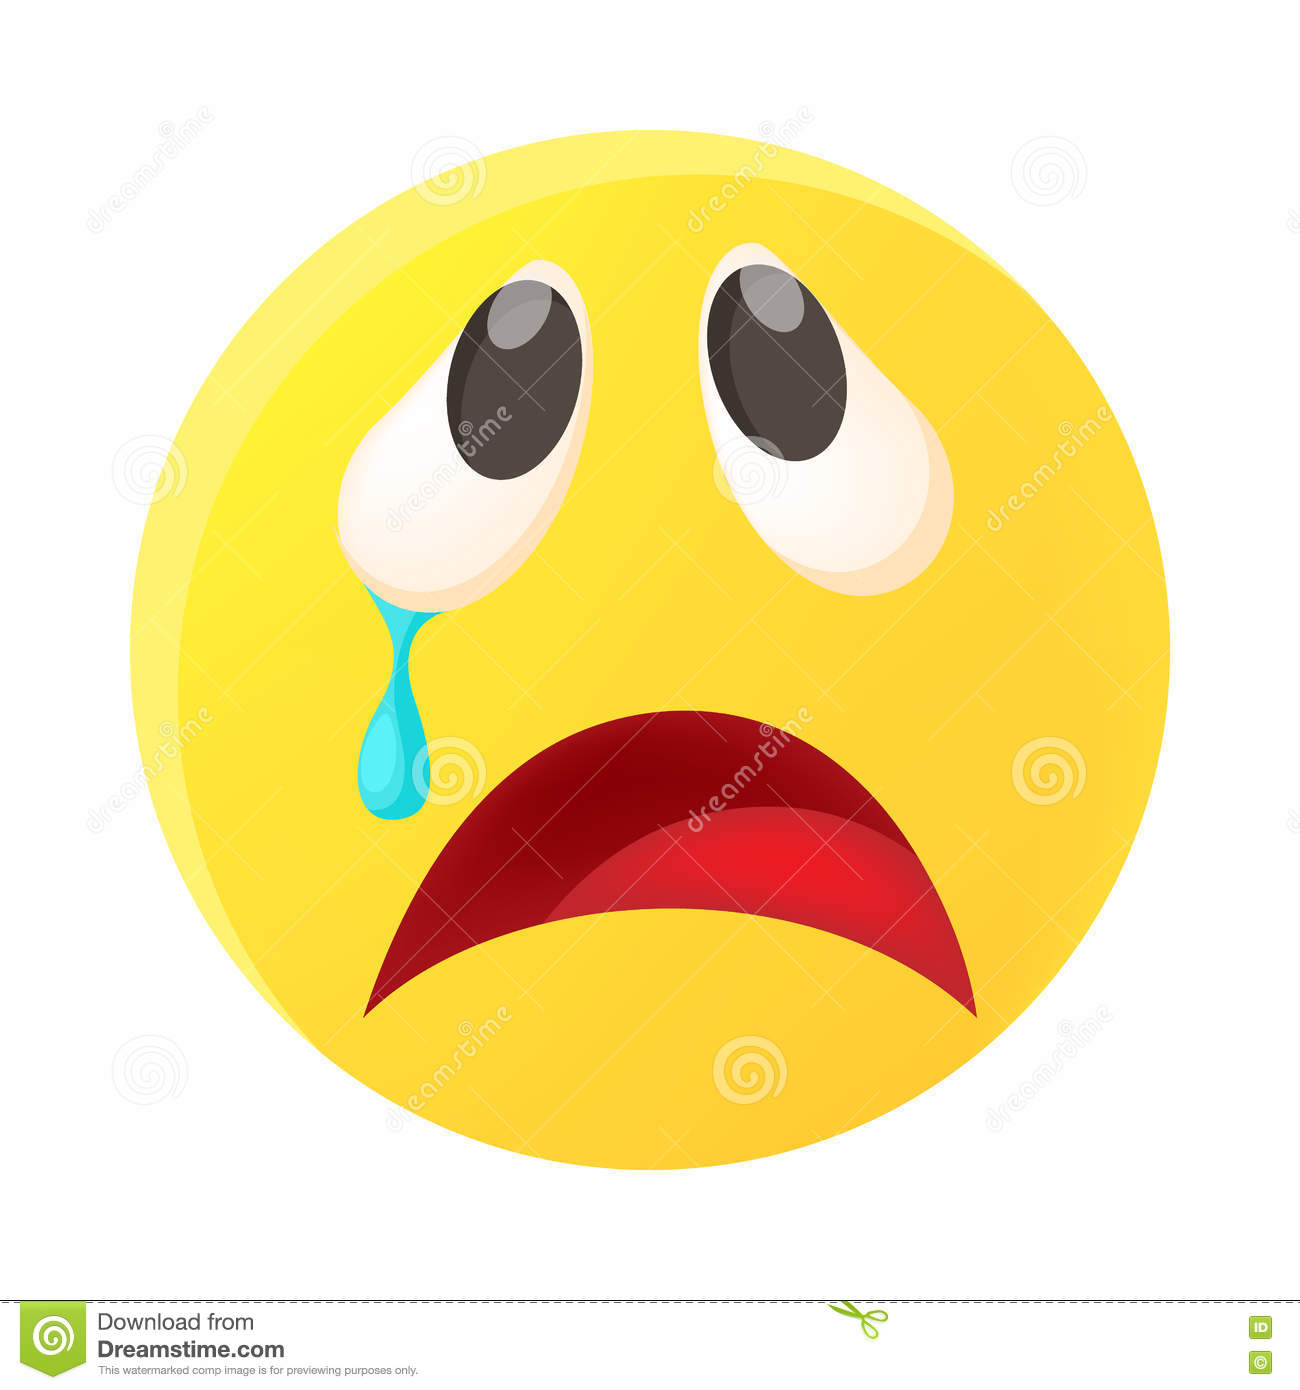 Crying Face Emoticon With Tear Icon, Cartoon Style Stock